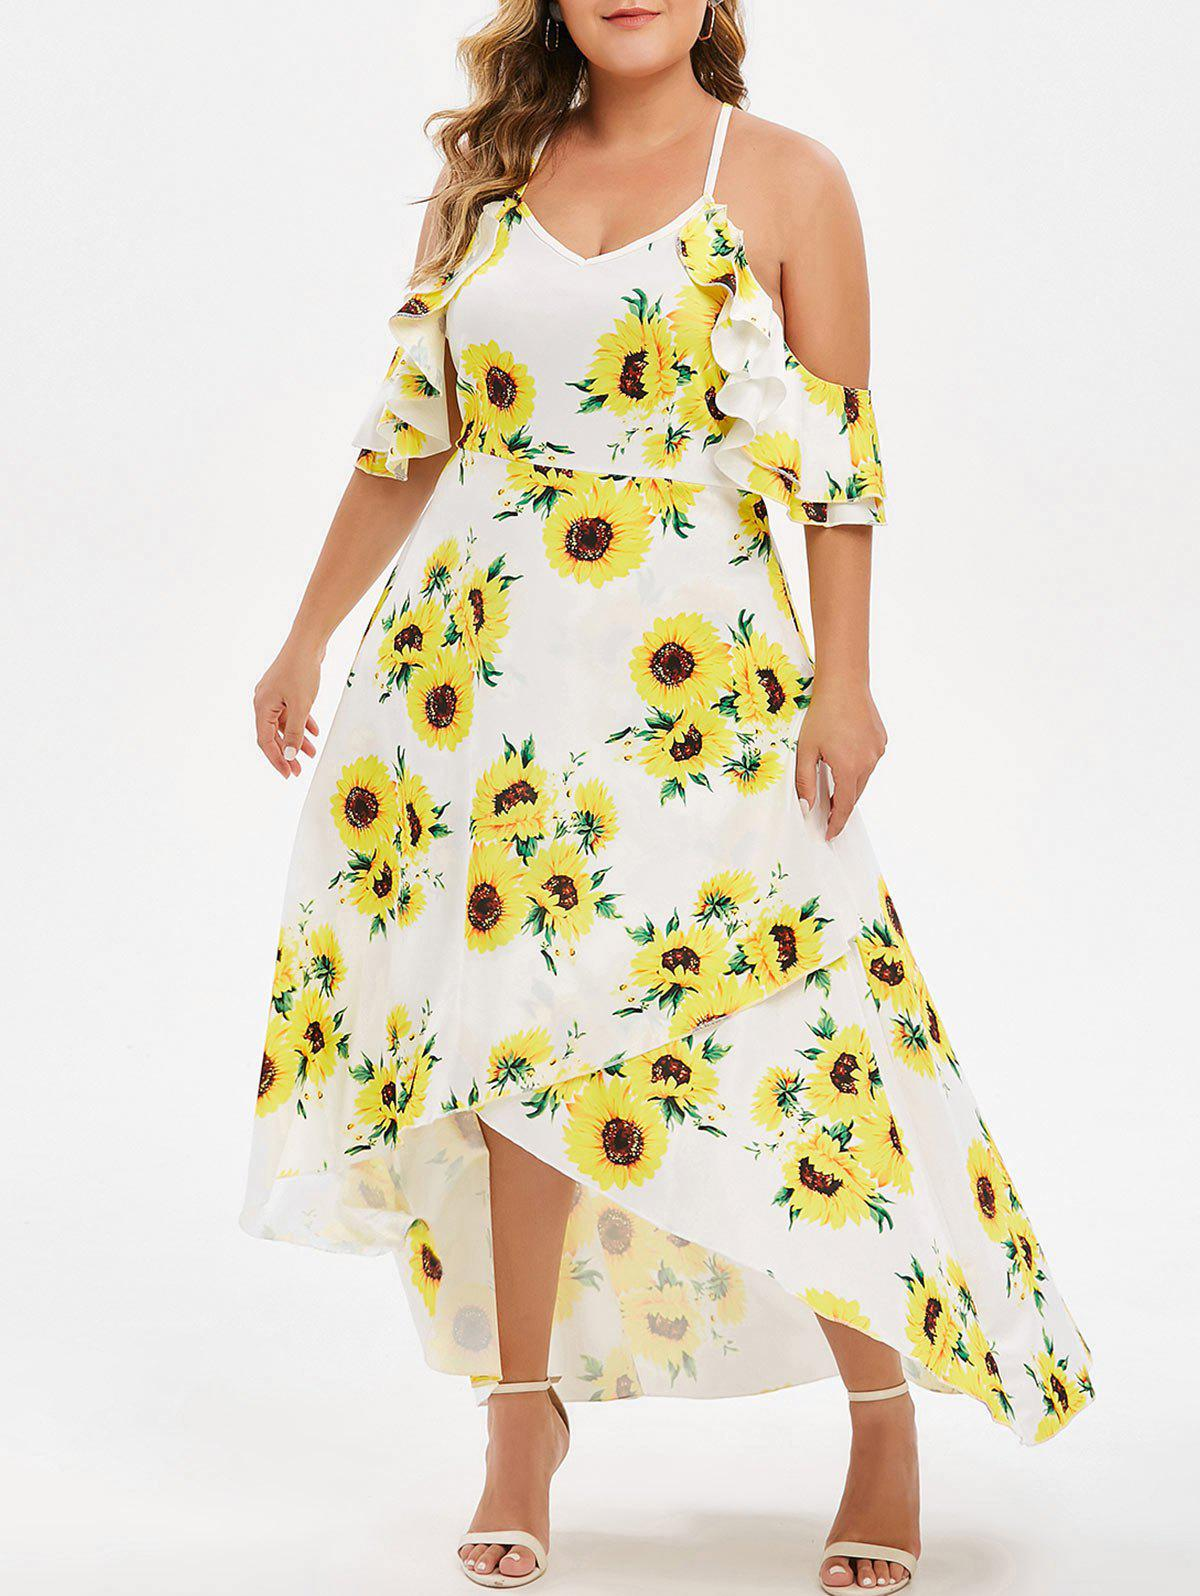 Plus Size Floral Print Ruffle Trim Asymmetrical Dress - YELLOW 4X